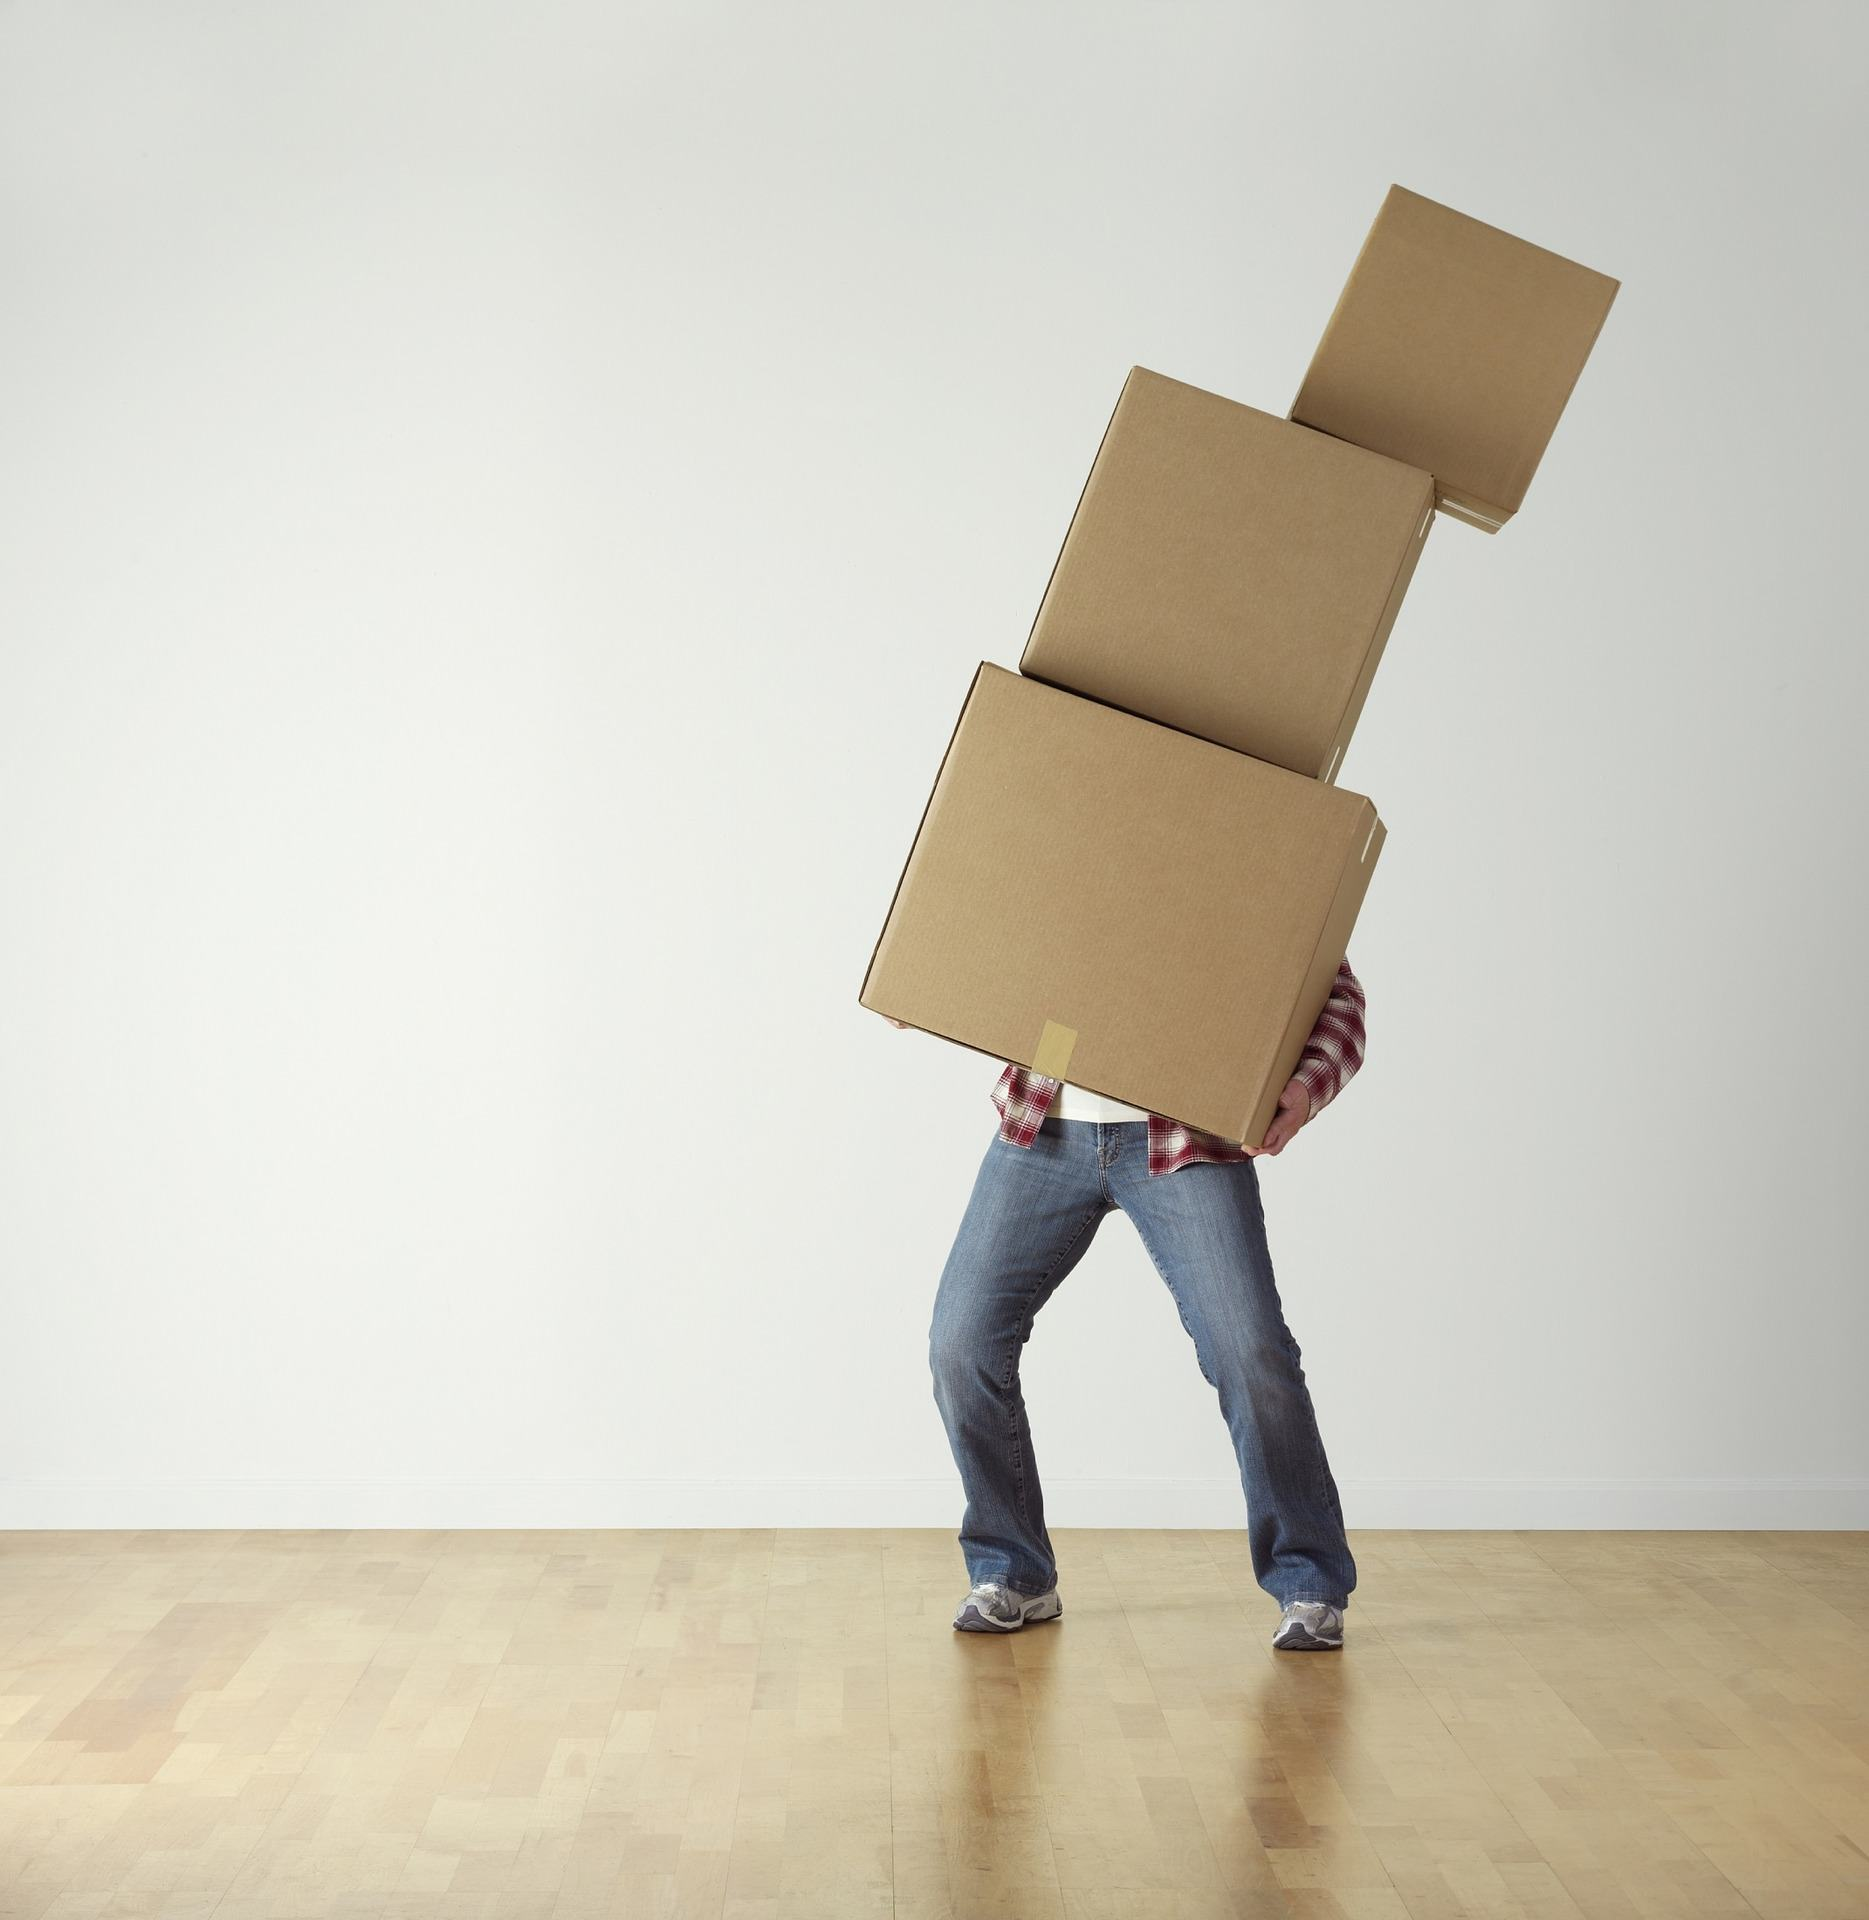 Safety tips for moving and storage